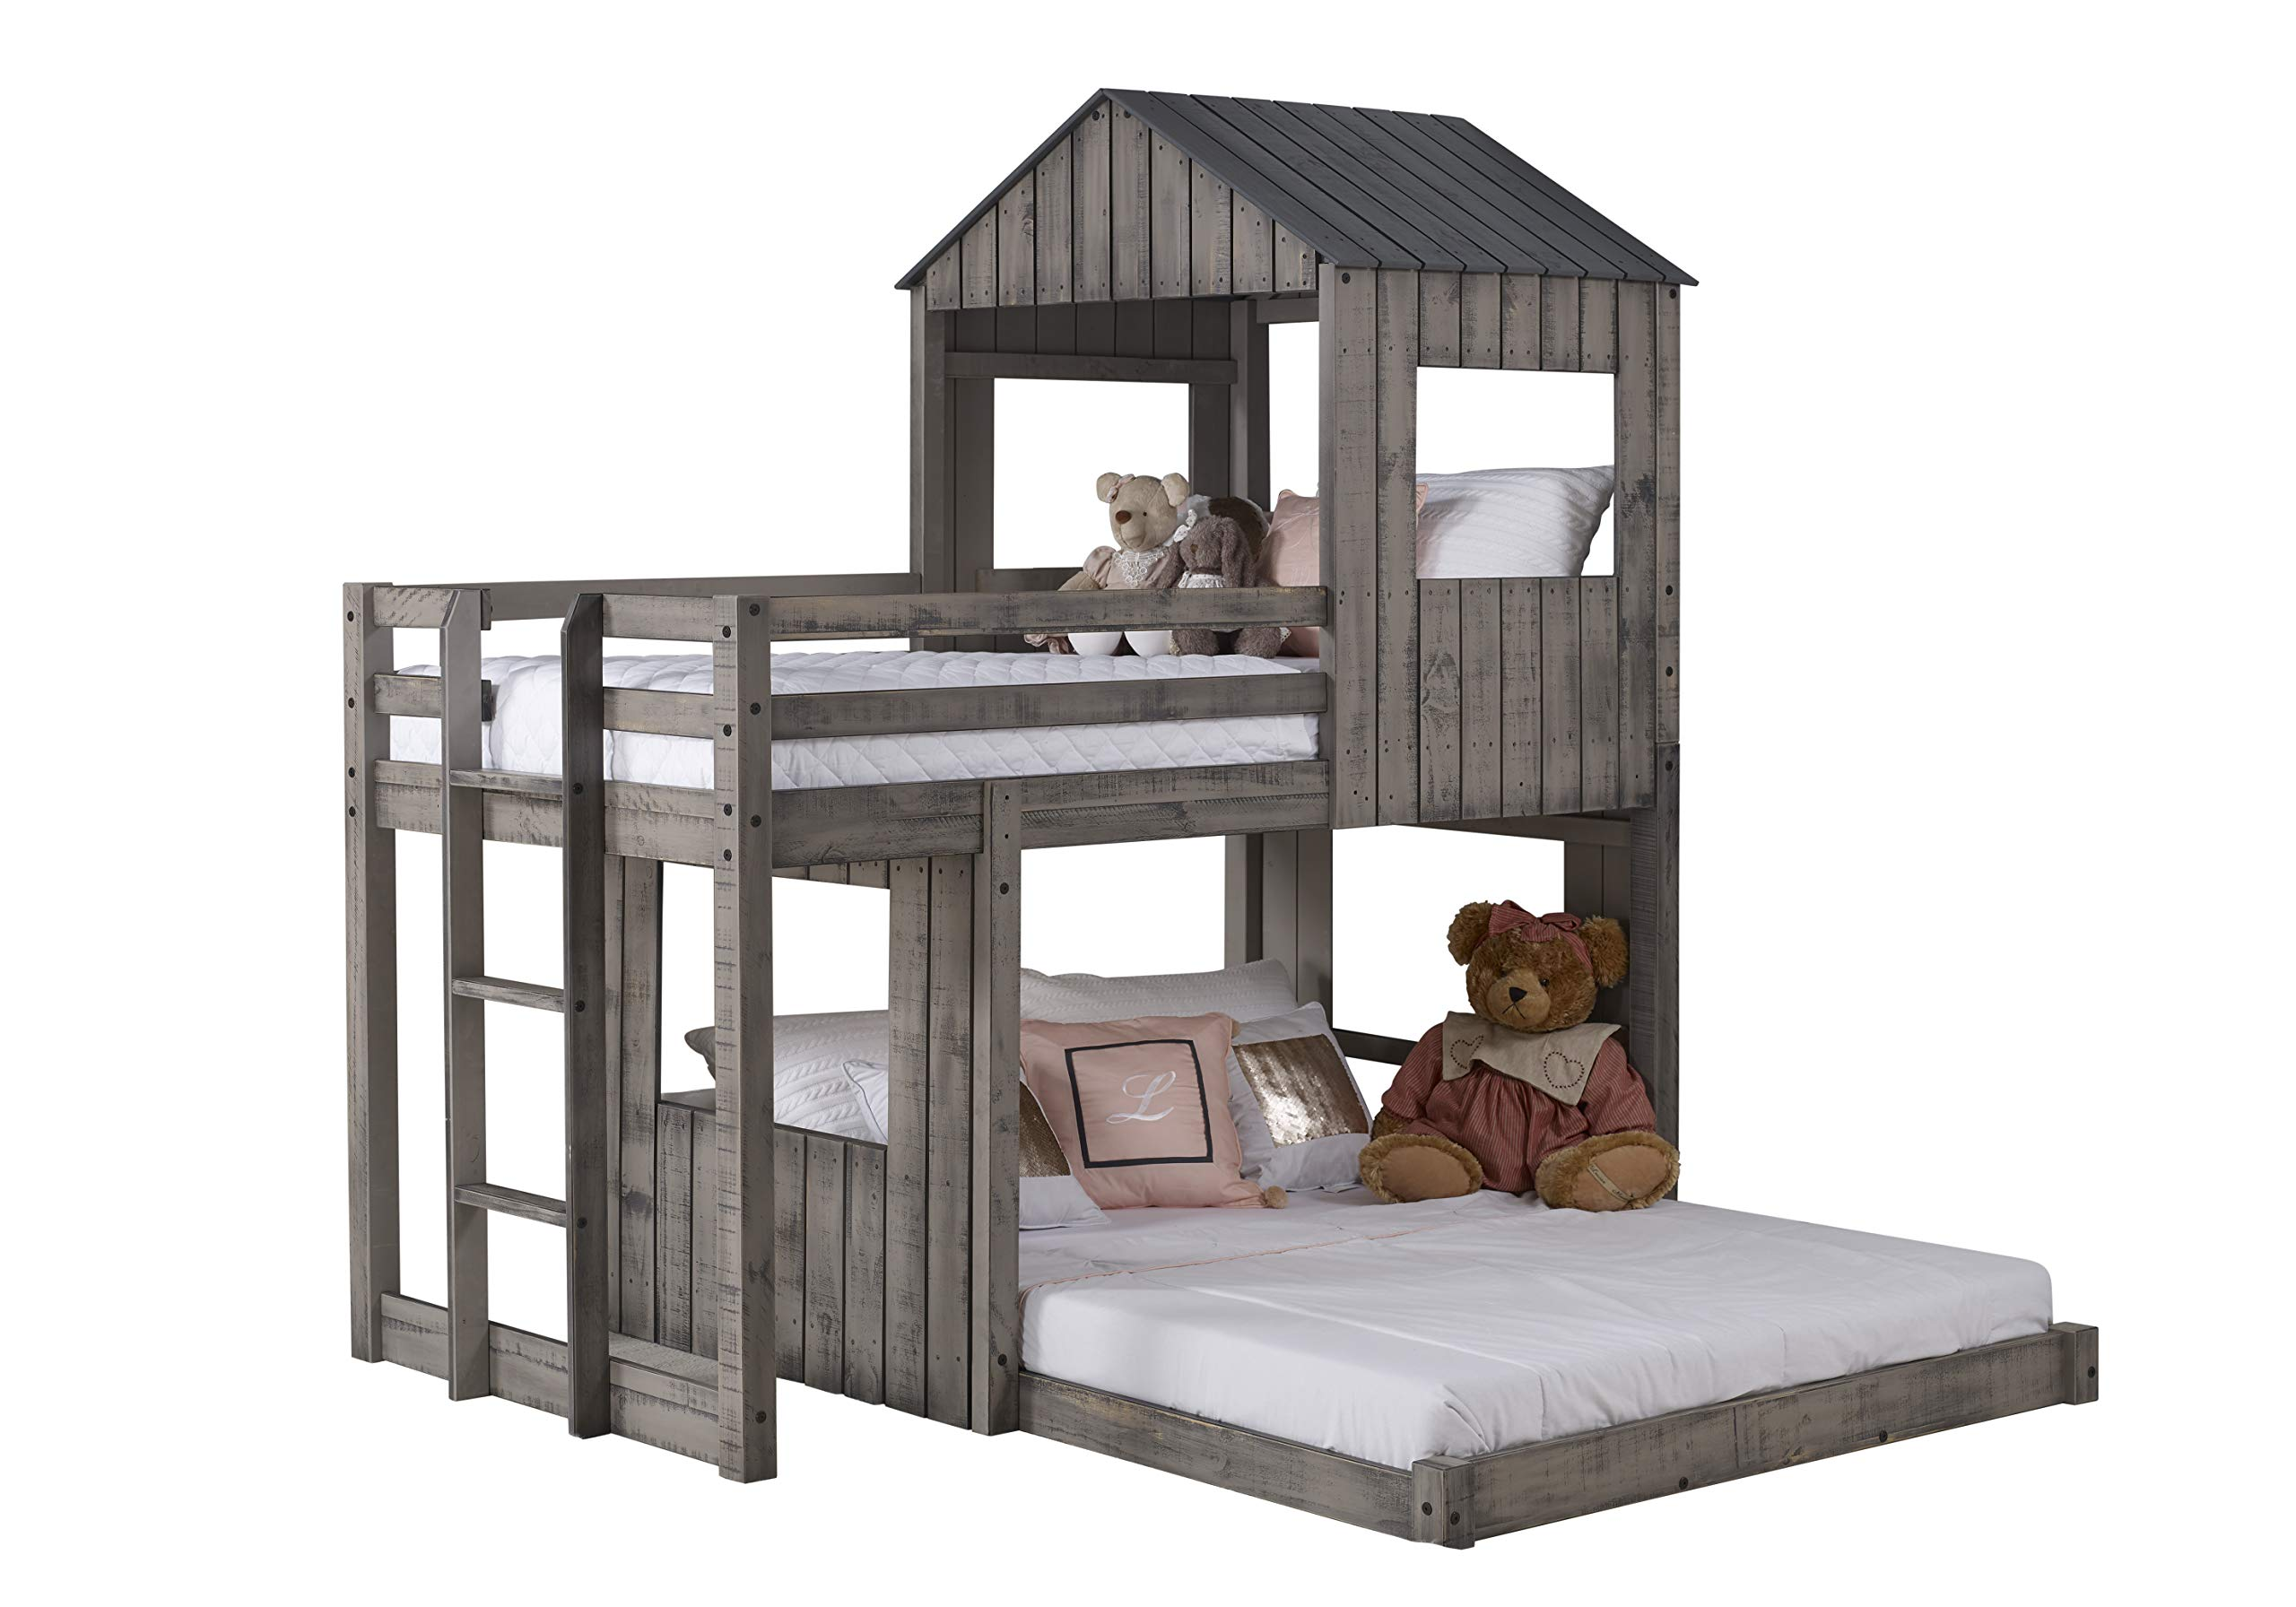 DONCO 3344-TFRDG Twin Over Full Campsite Loft BUNKBED Rustic Dirty Grey by DONCO